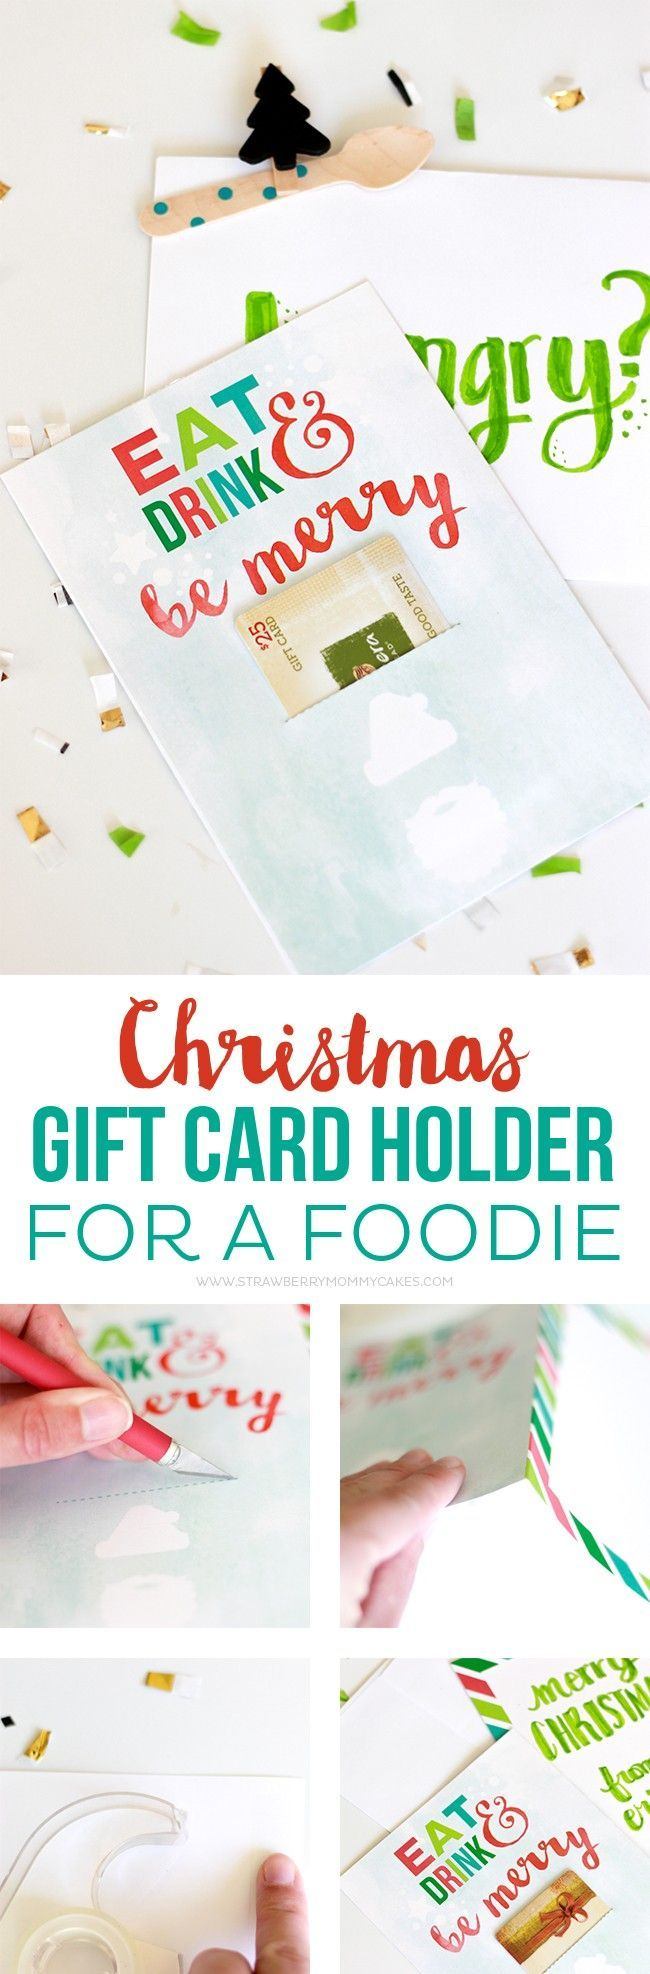 How to Make a Christmas Gift Card Holder for a Foodie | Printables ...